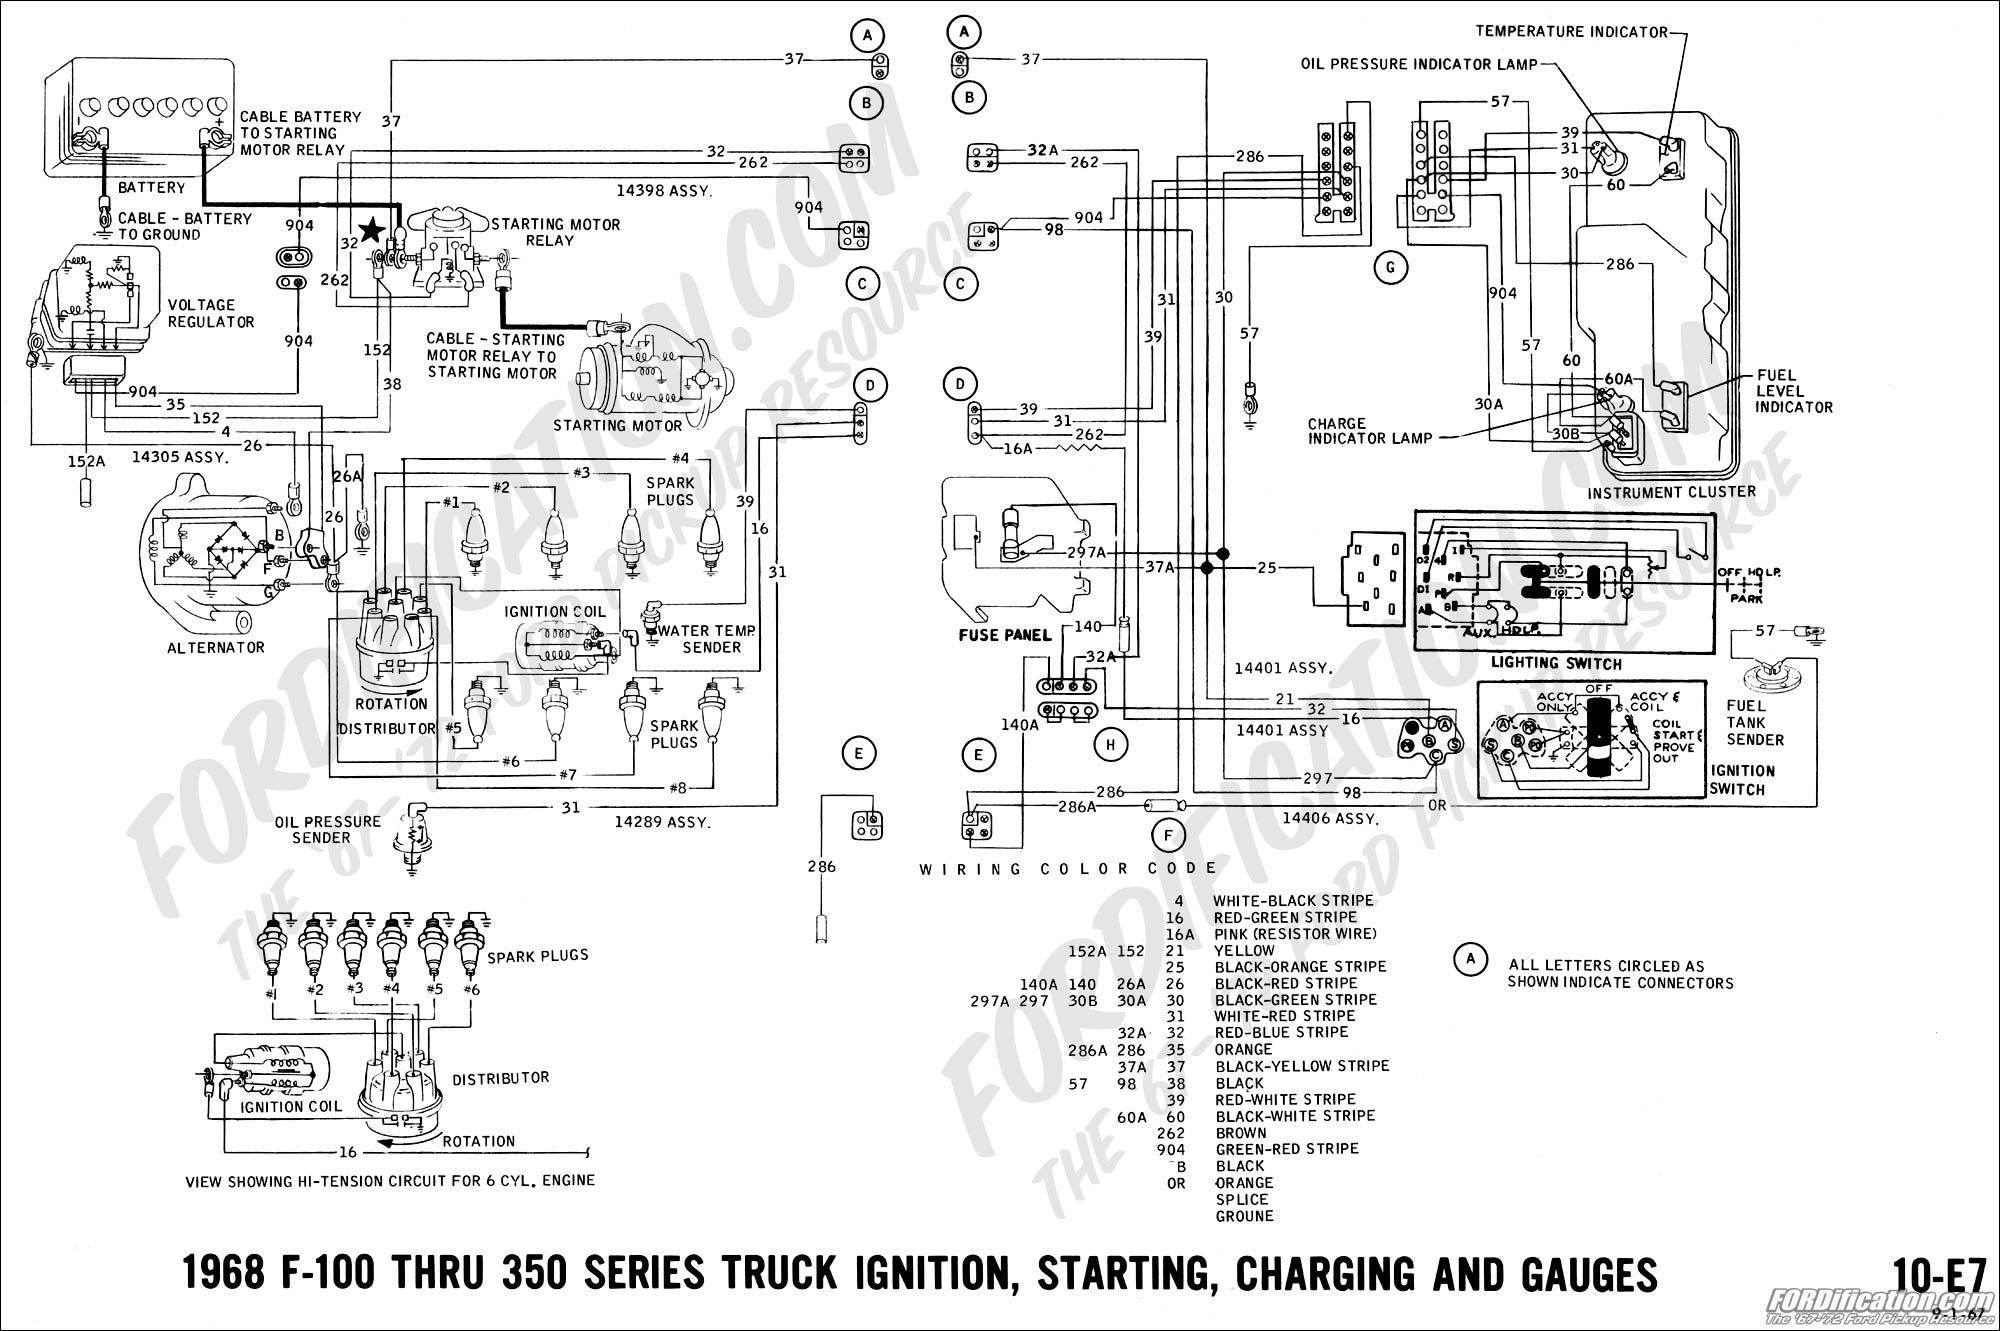 68 09 ford truck technical drawings and schematics section h wiring ford electronic ignition wiring diagram at virtualis.co